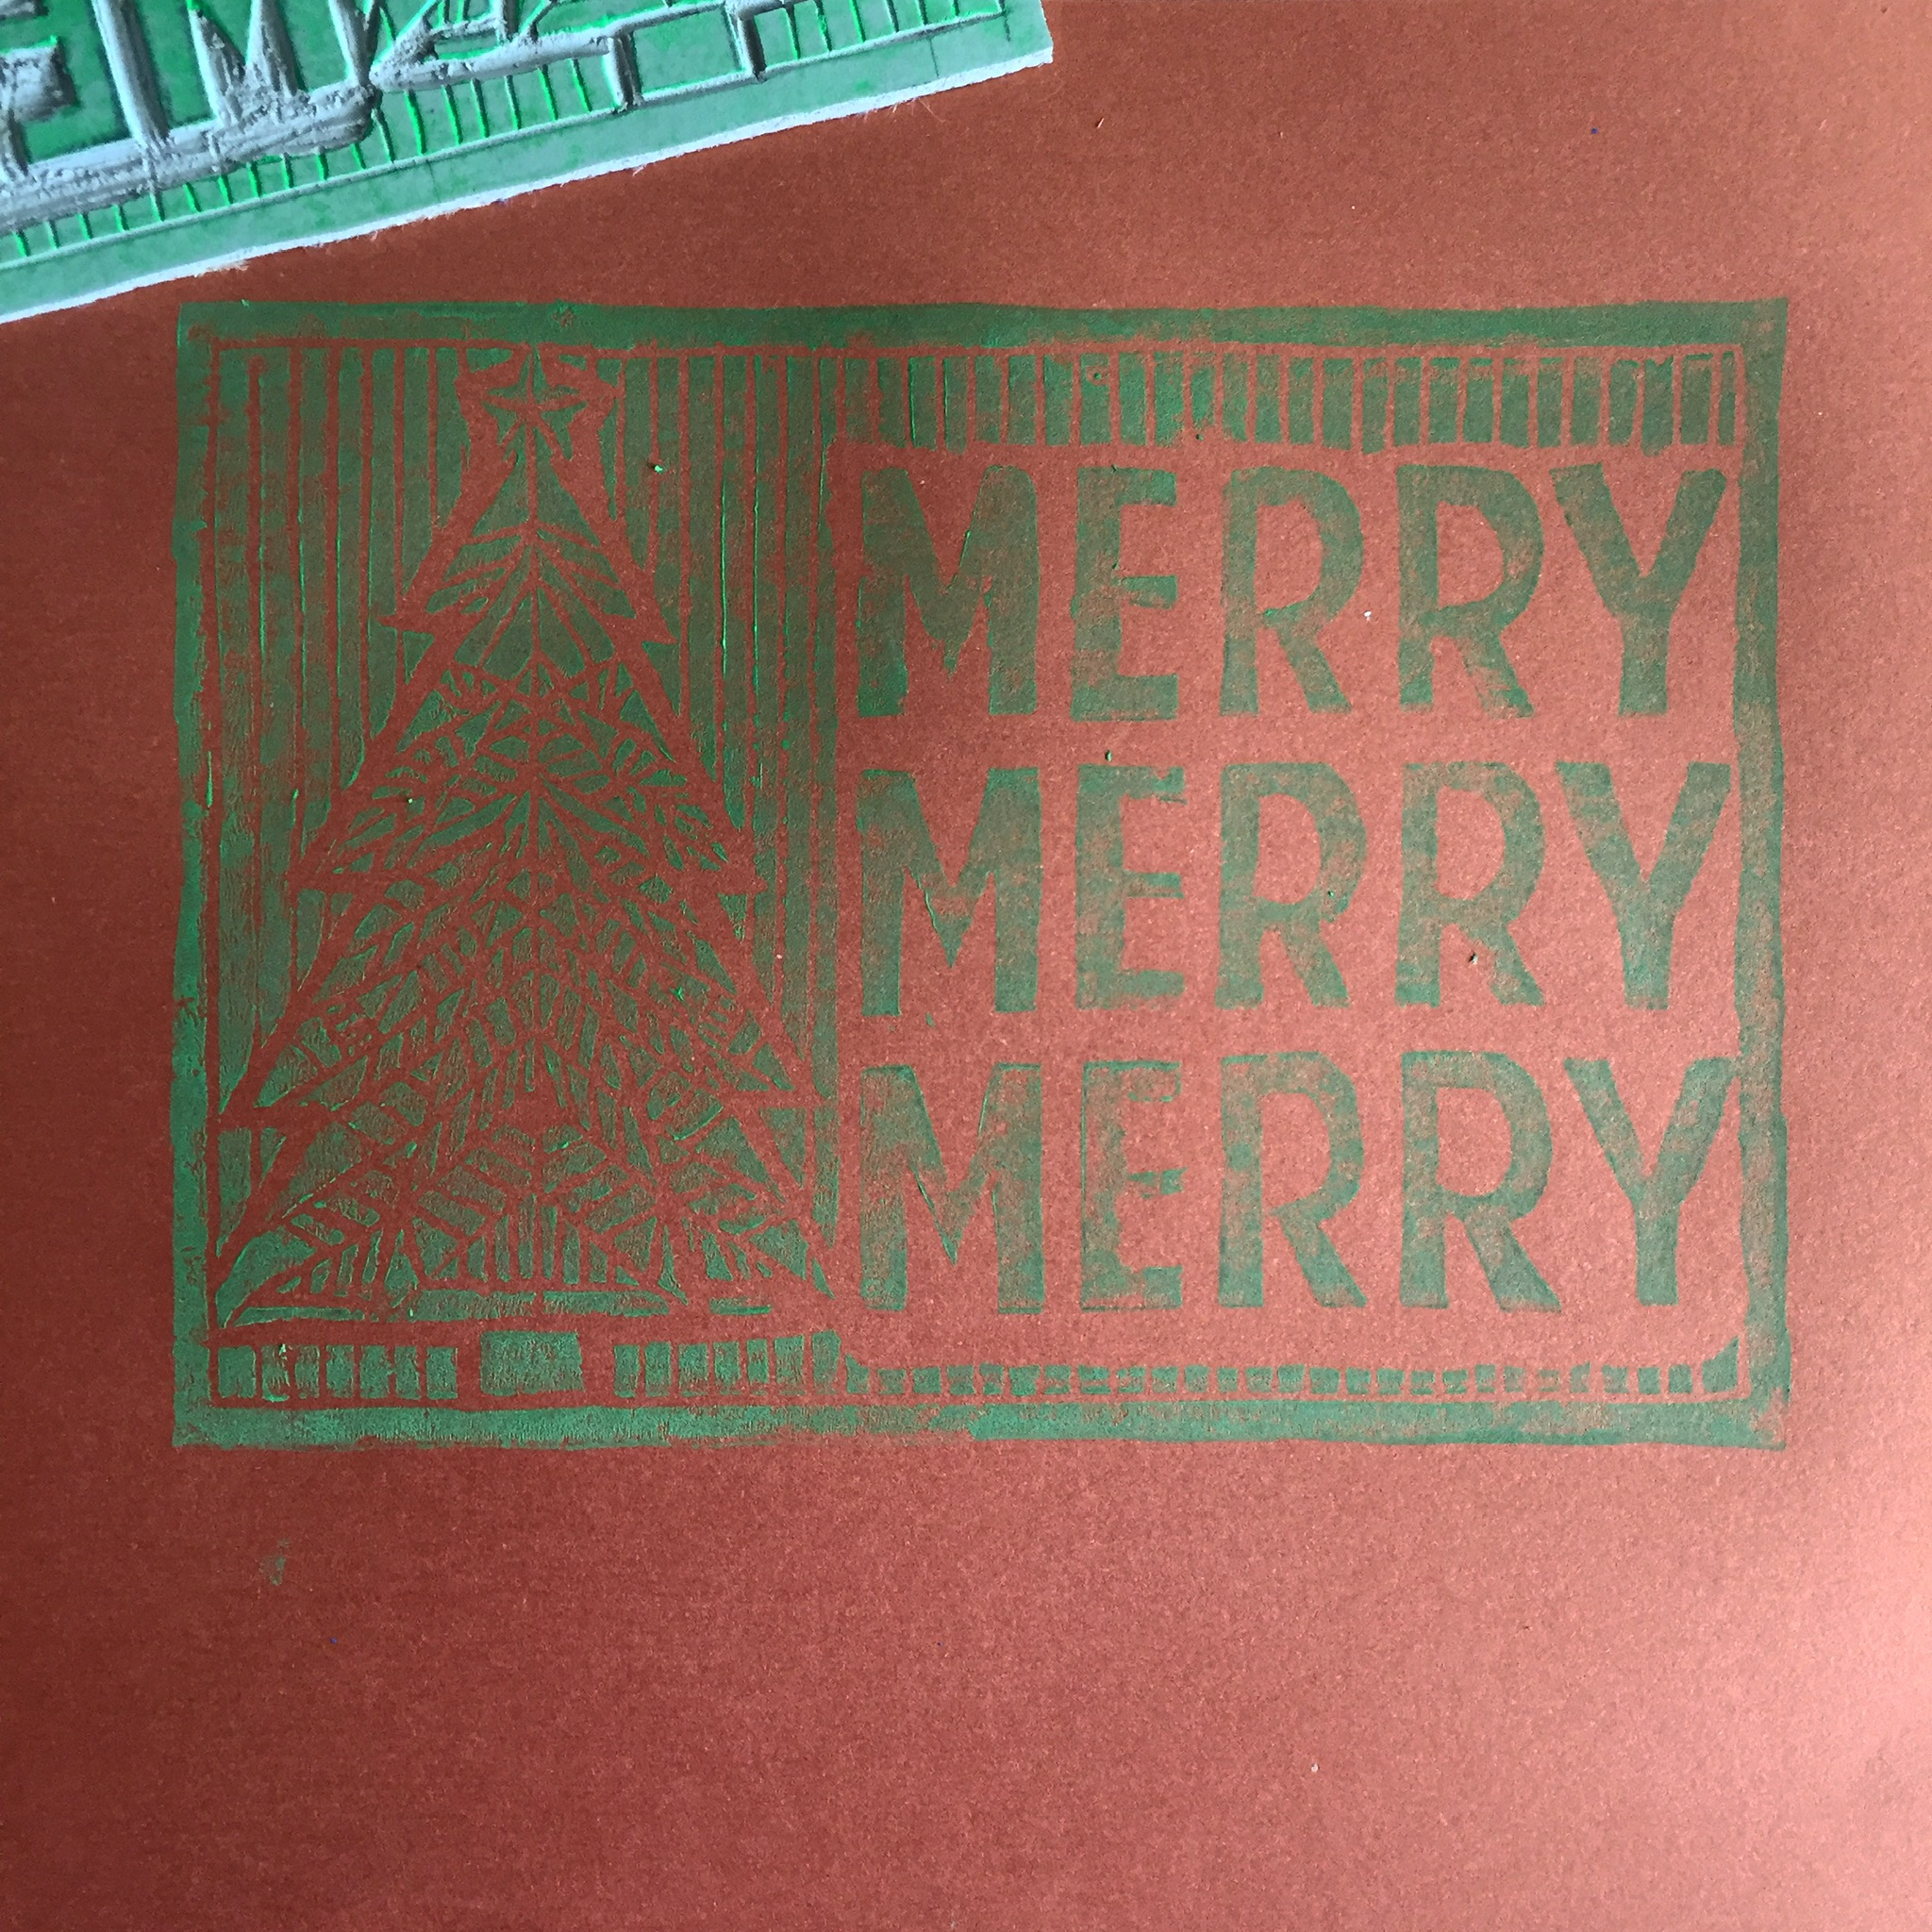 The first printing on metallic copper cardstock.